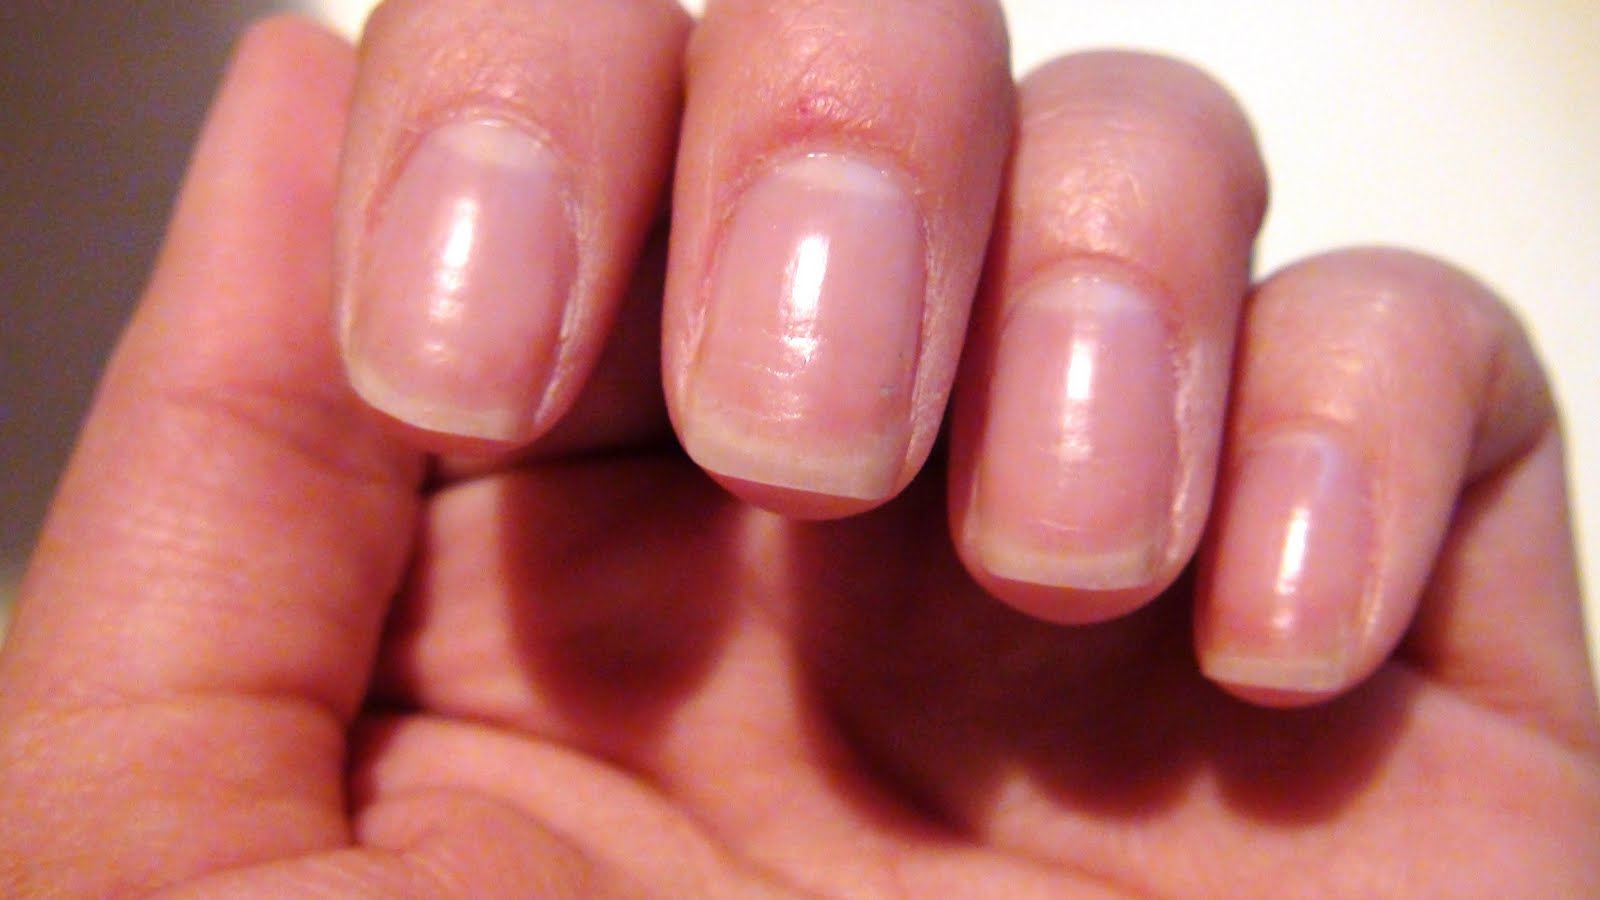 SCCASTANEDA: Growing my nails out - TRYING